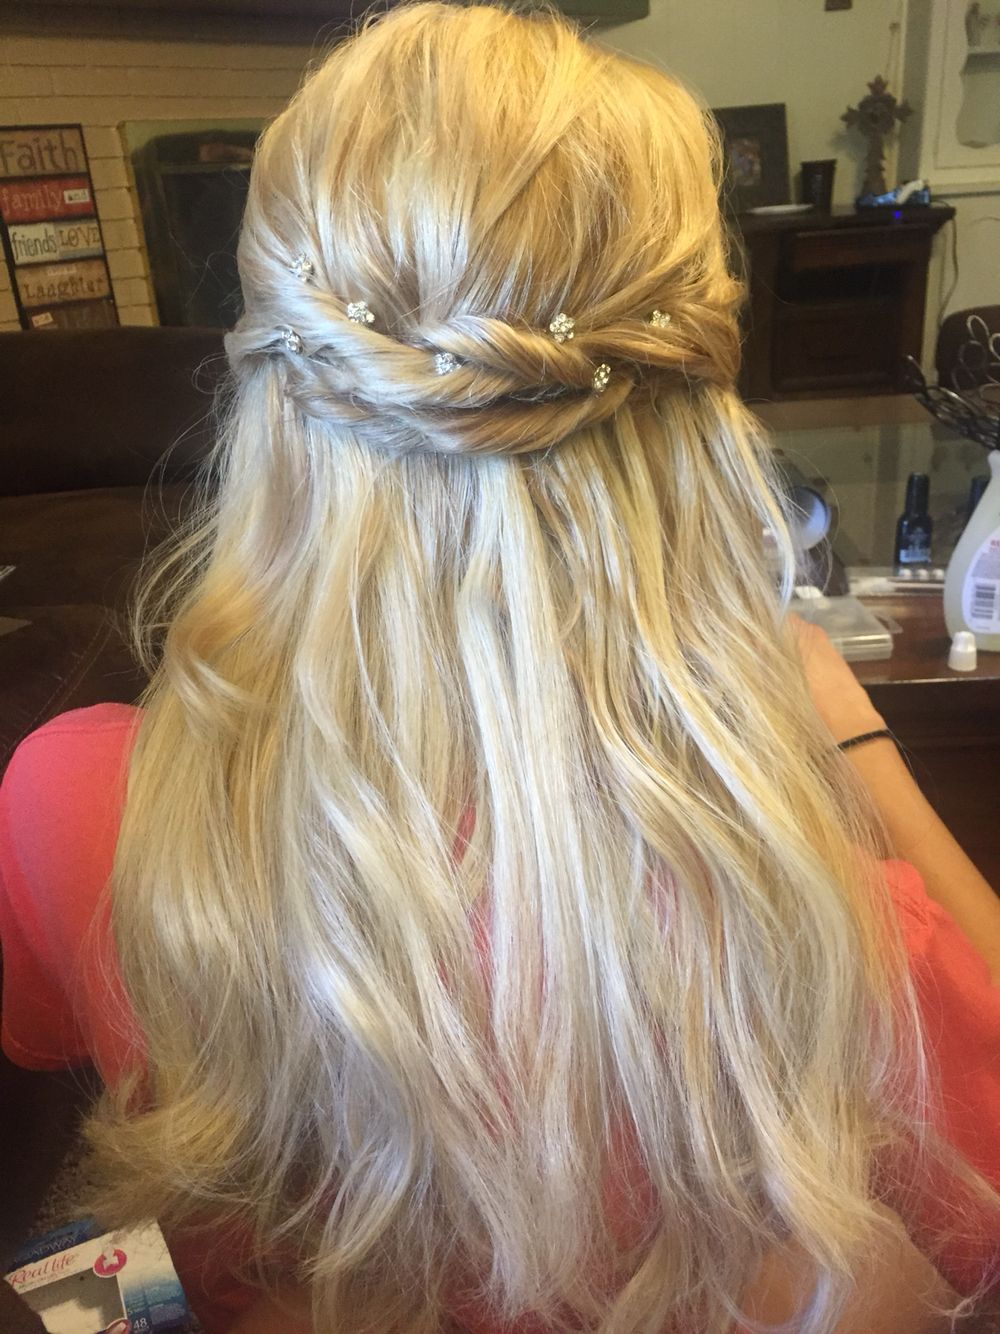 Simple updo design,really good for prom or banquets ...